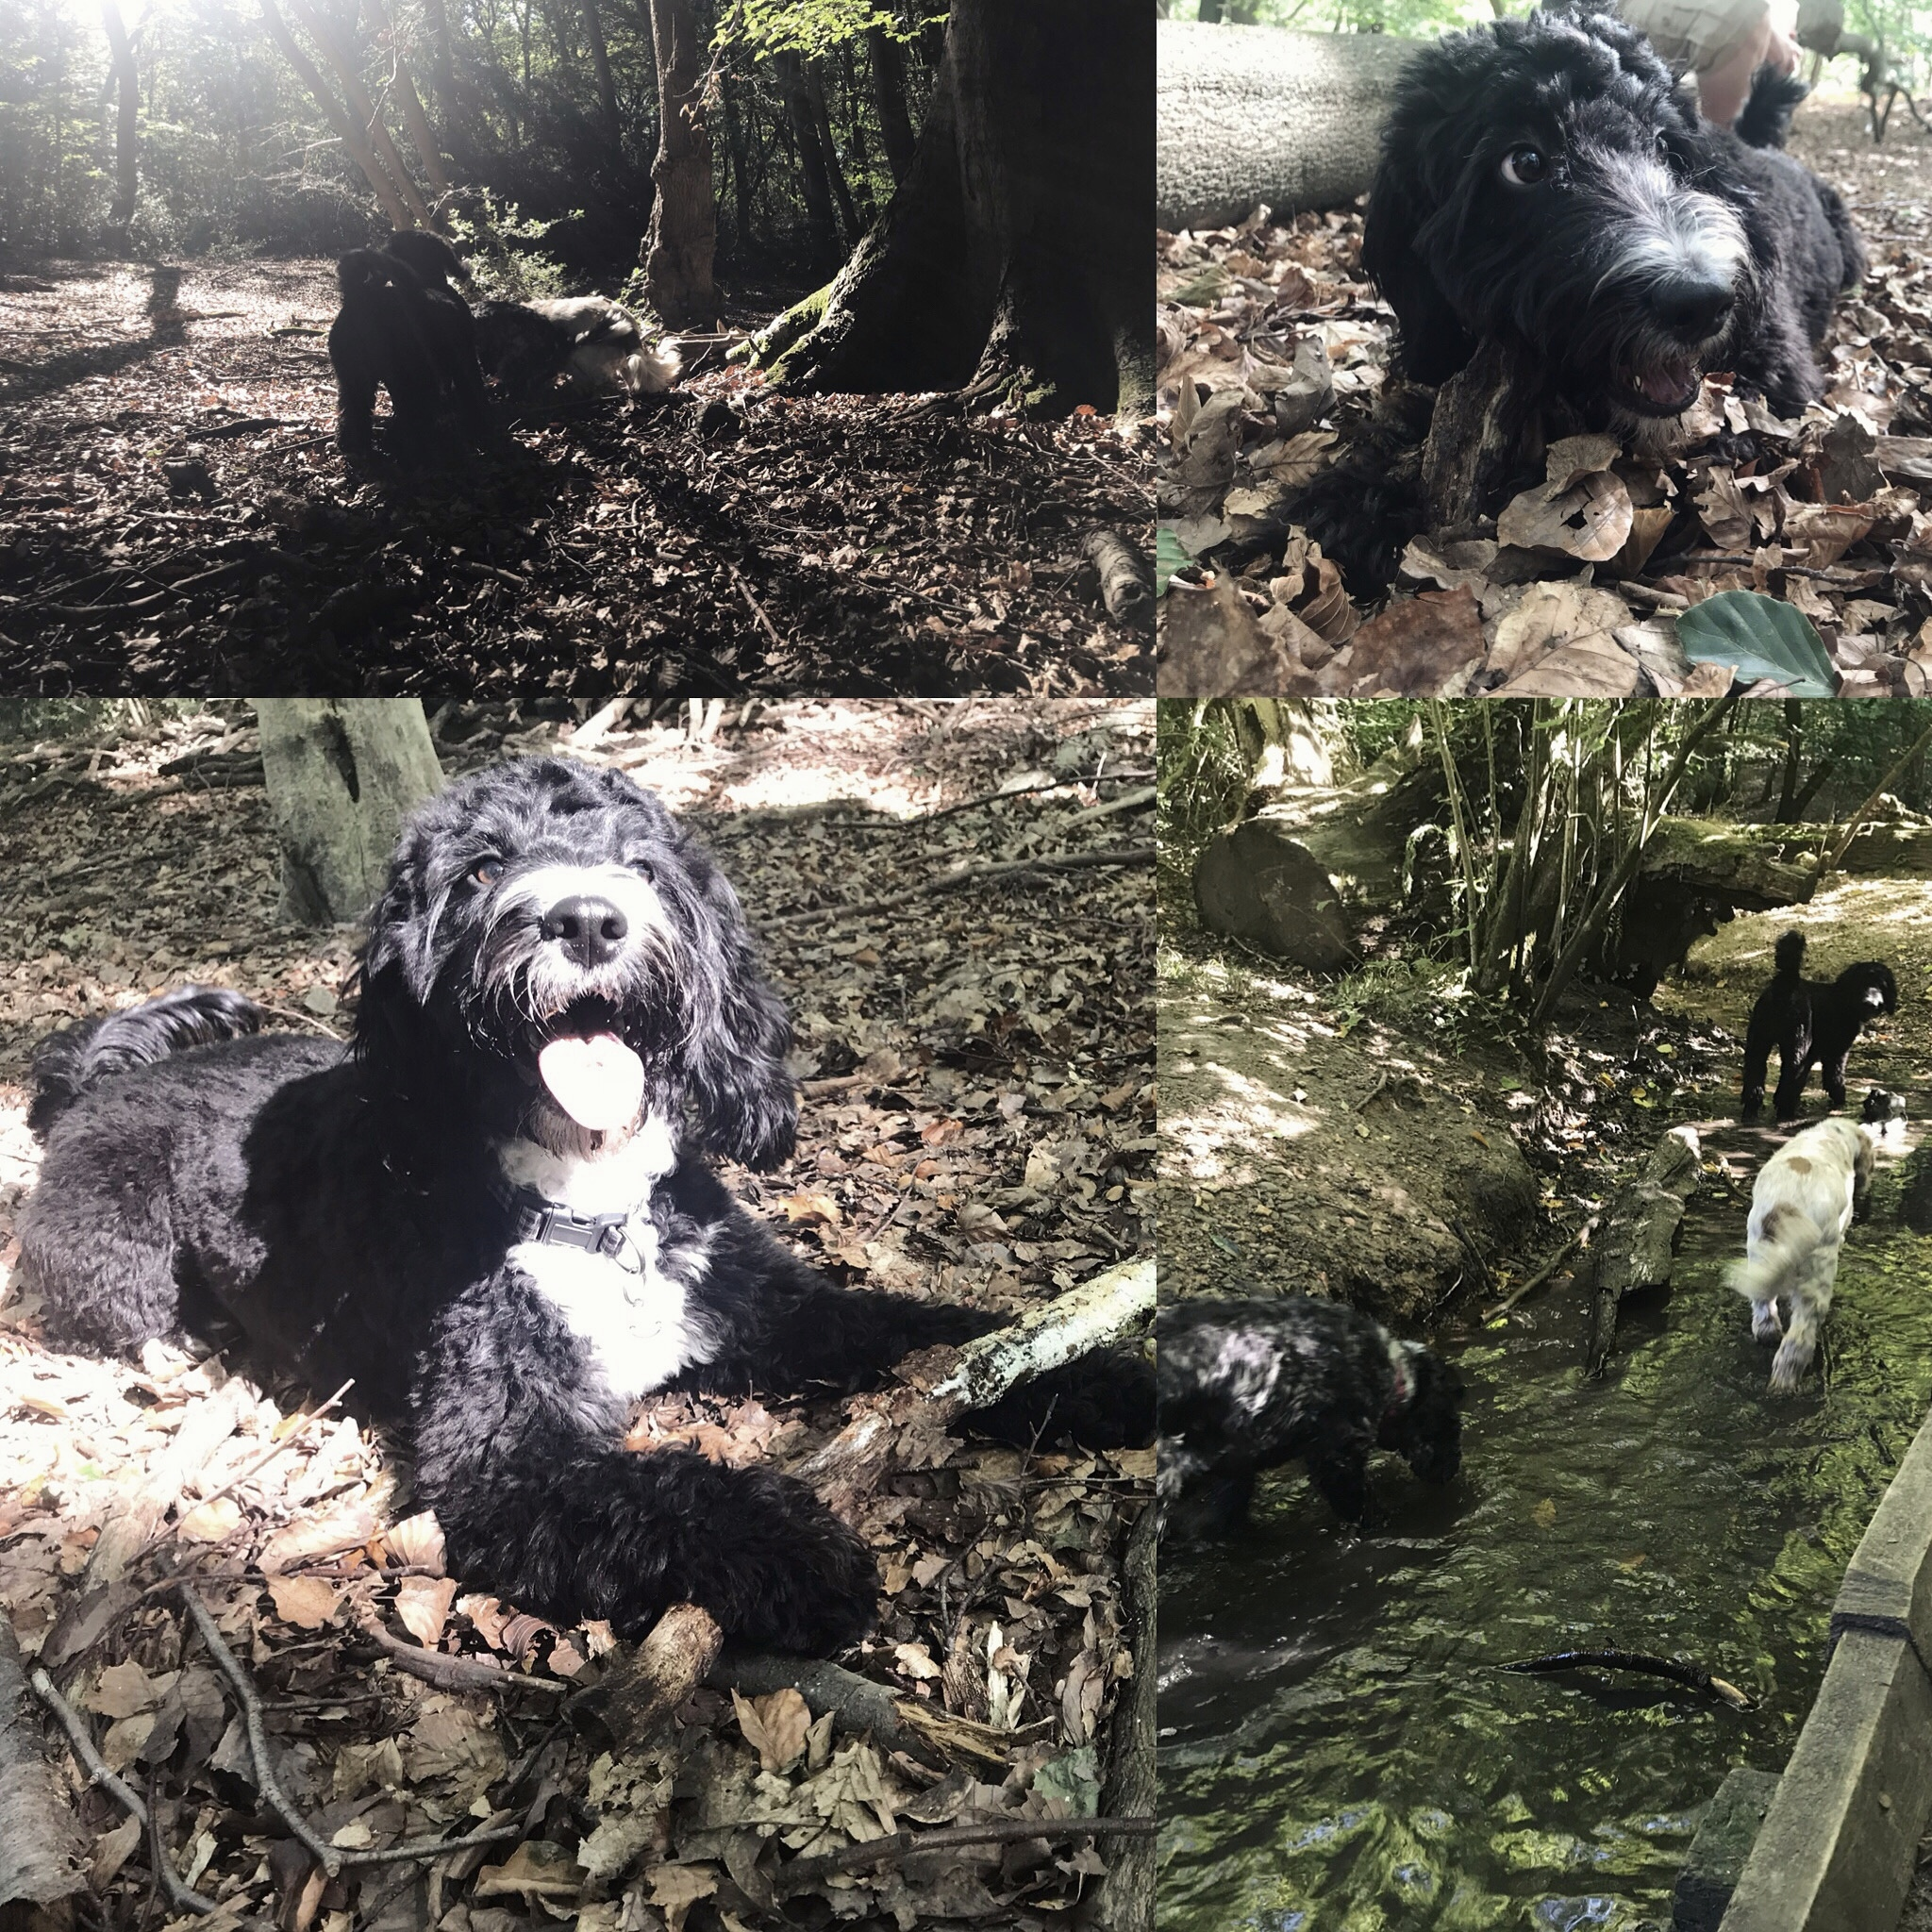 Into The Woods - Got a stick, got my friends, I'm happy as a pup in mud.